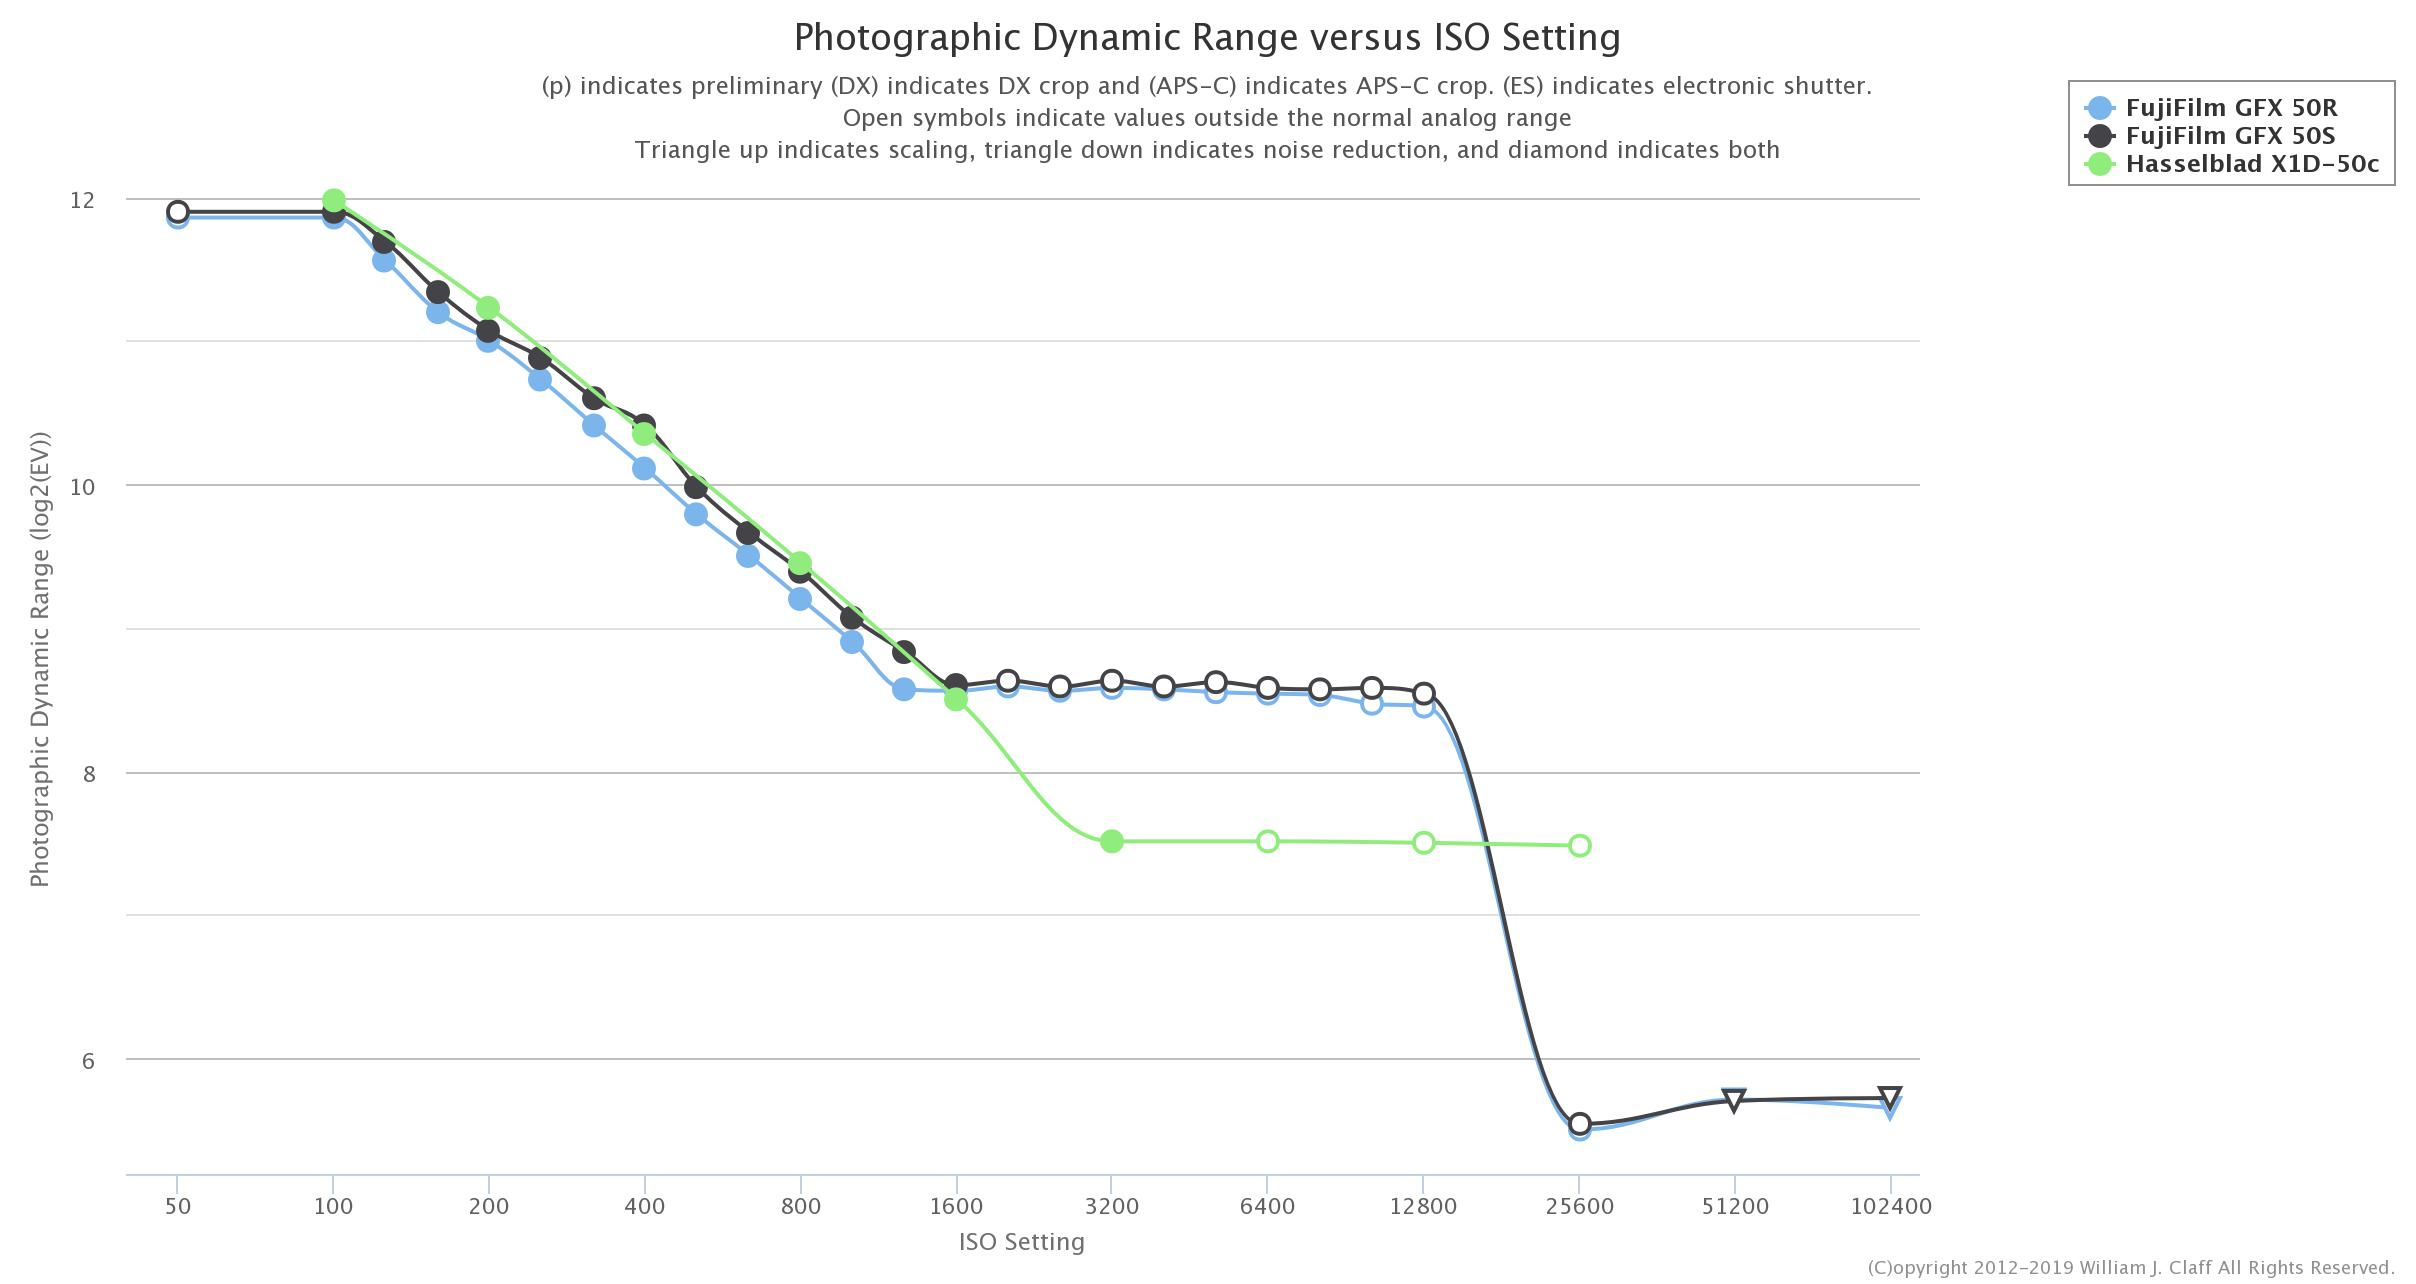 New sensor test data at PhotonsToPhotos: Fuji GFX50R vs